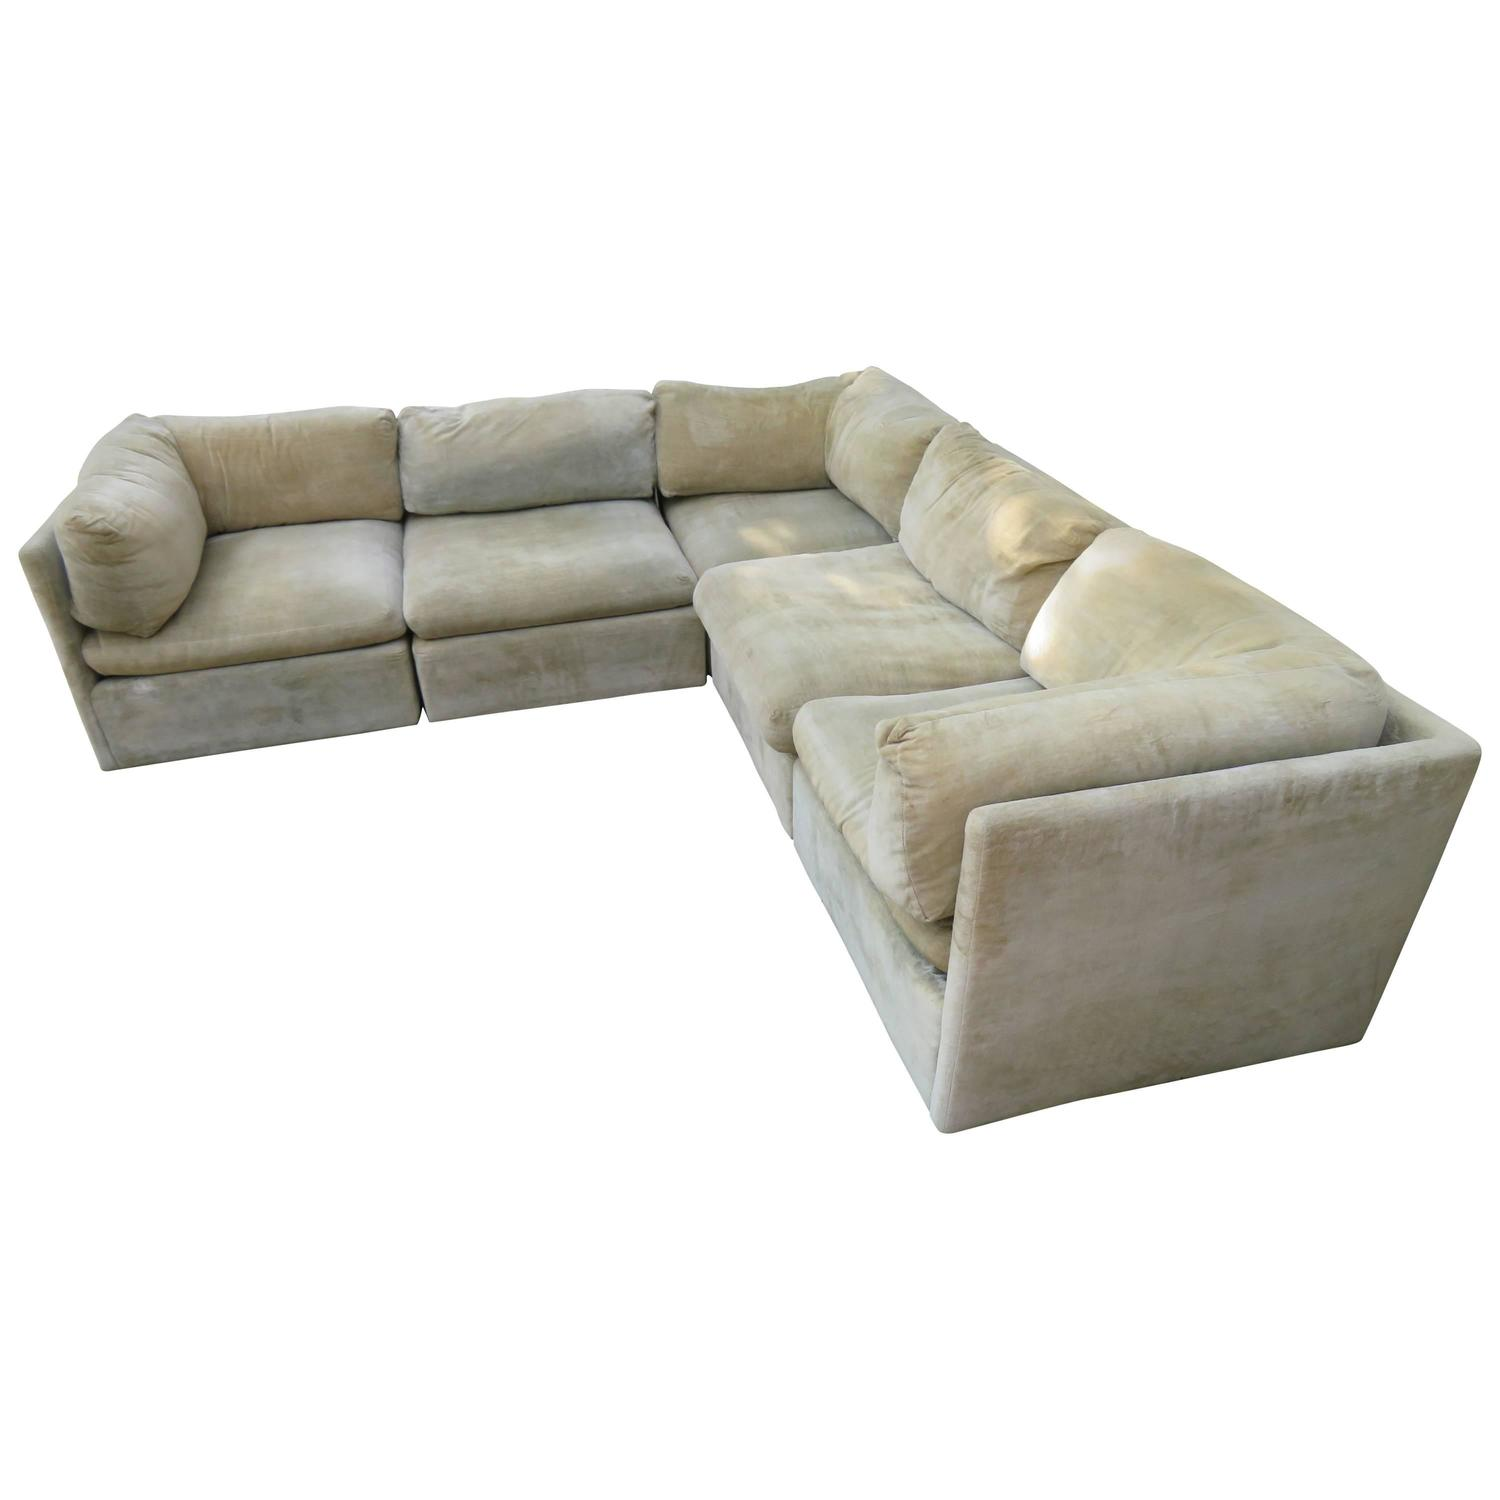 Milo Baughman Sectional Sofas 31 For Sale at 1stdibs